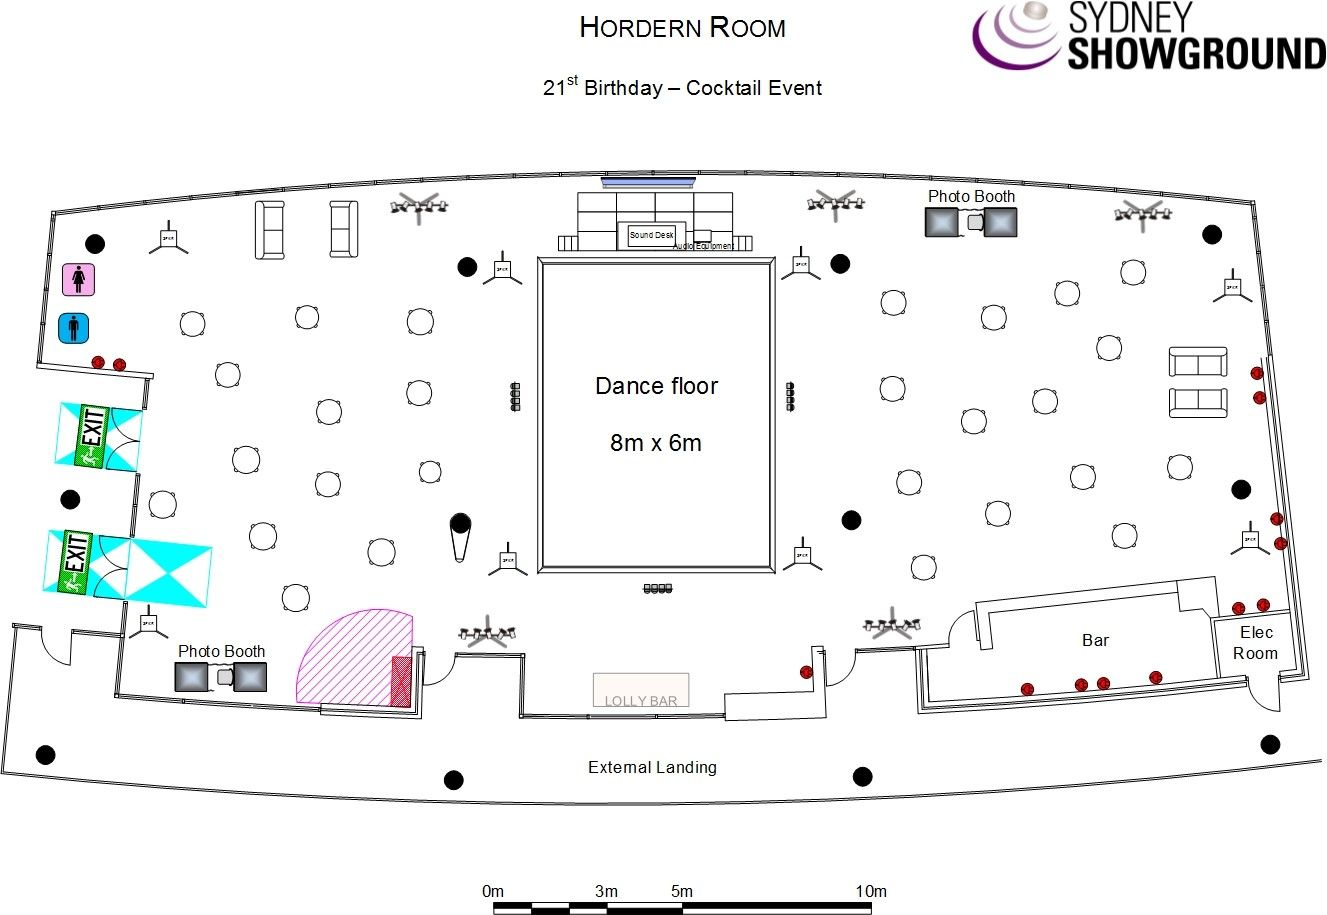 Hordorn Room Coctail Event Event Layout Birthday Cocktails